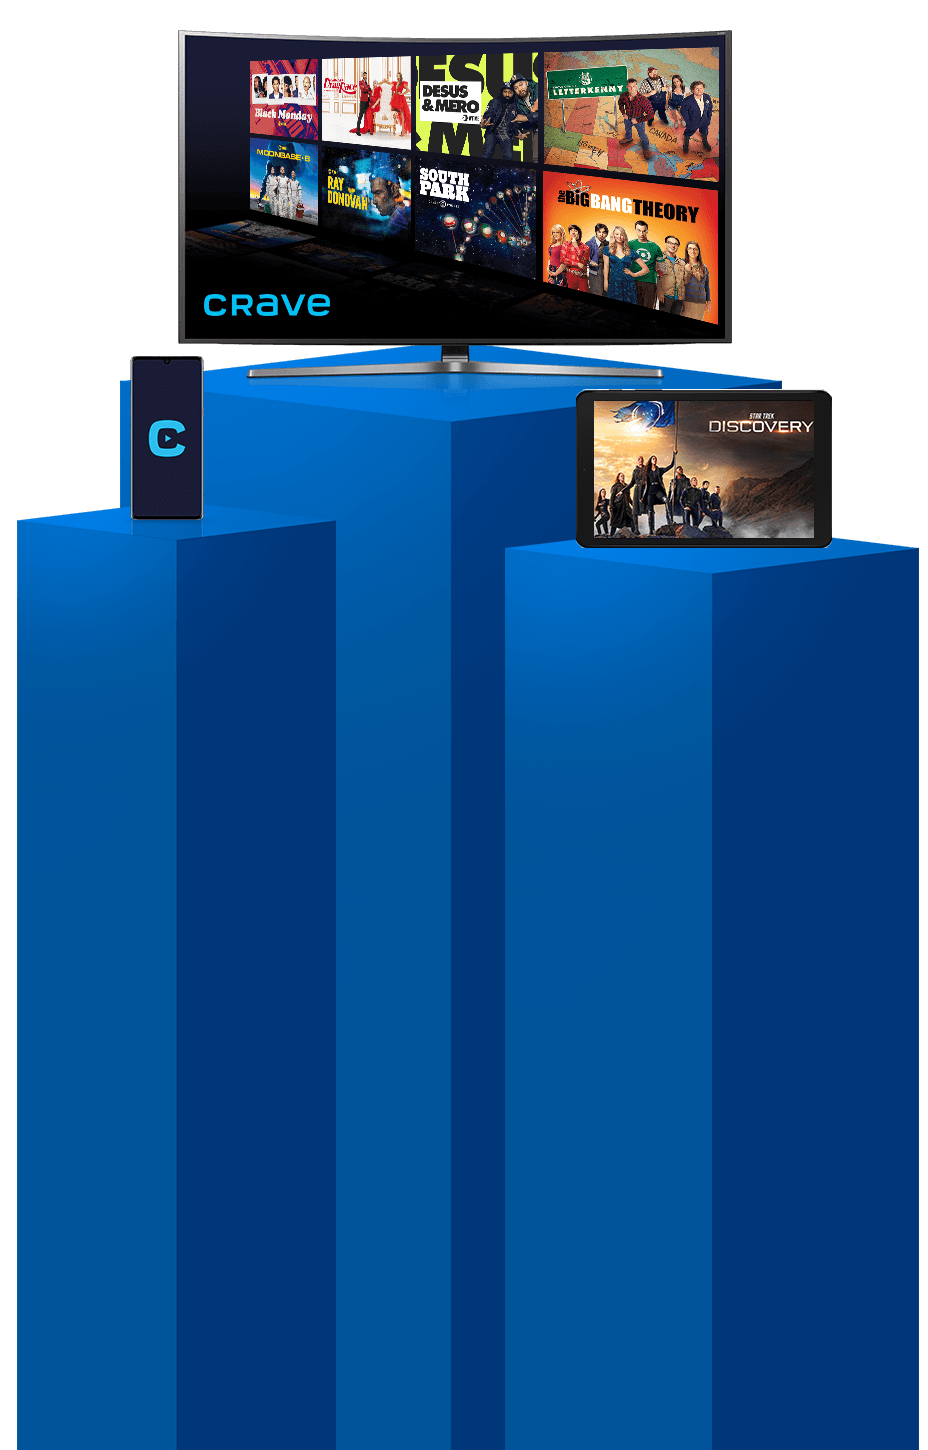 Crave Banner Image